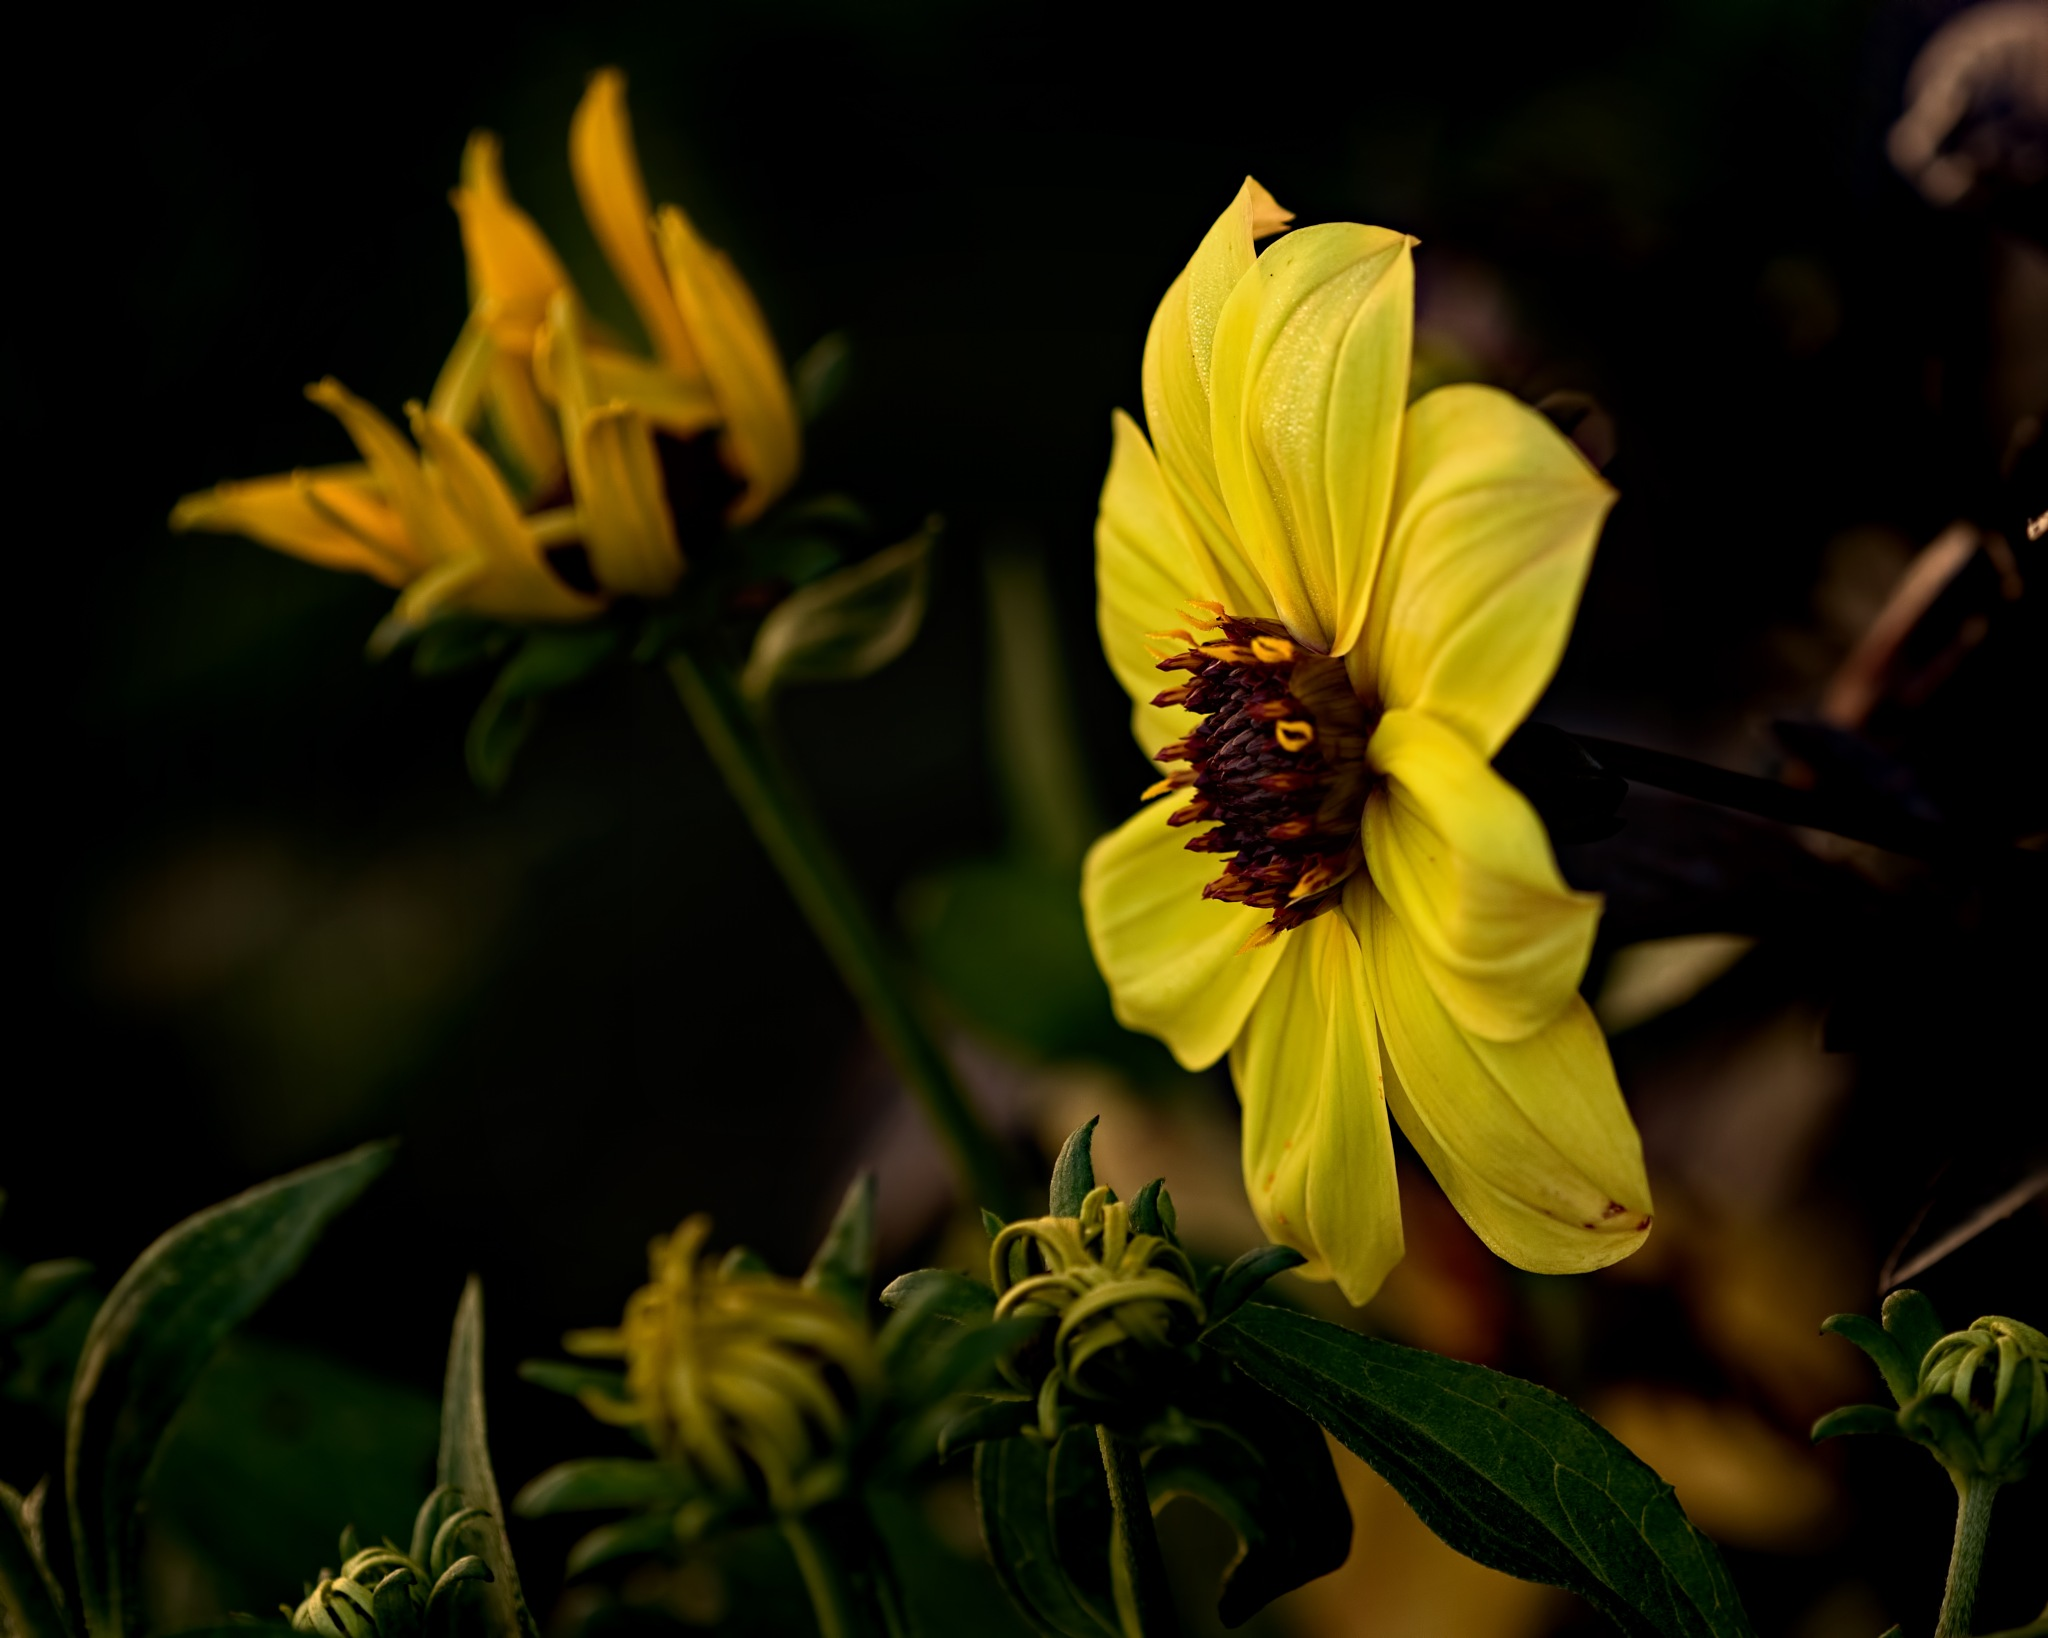 Yellow Dahlia in the Garden 0710 by ThomasJerger